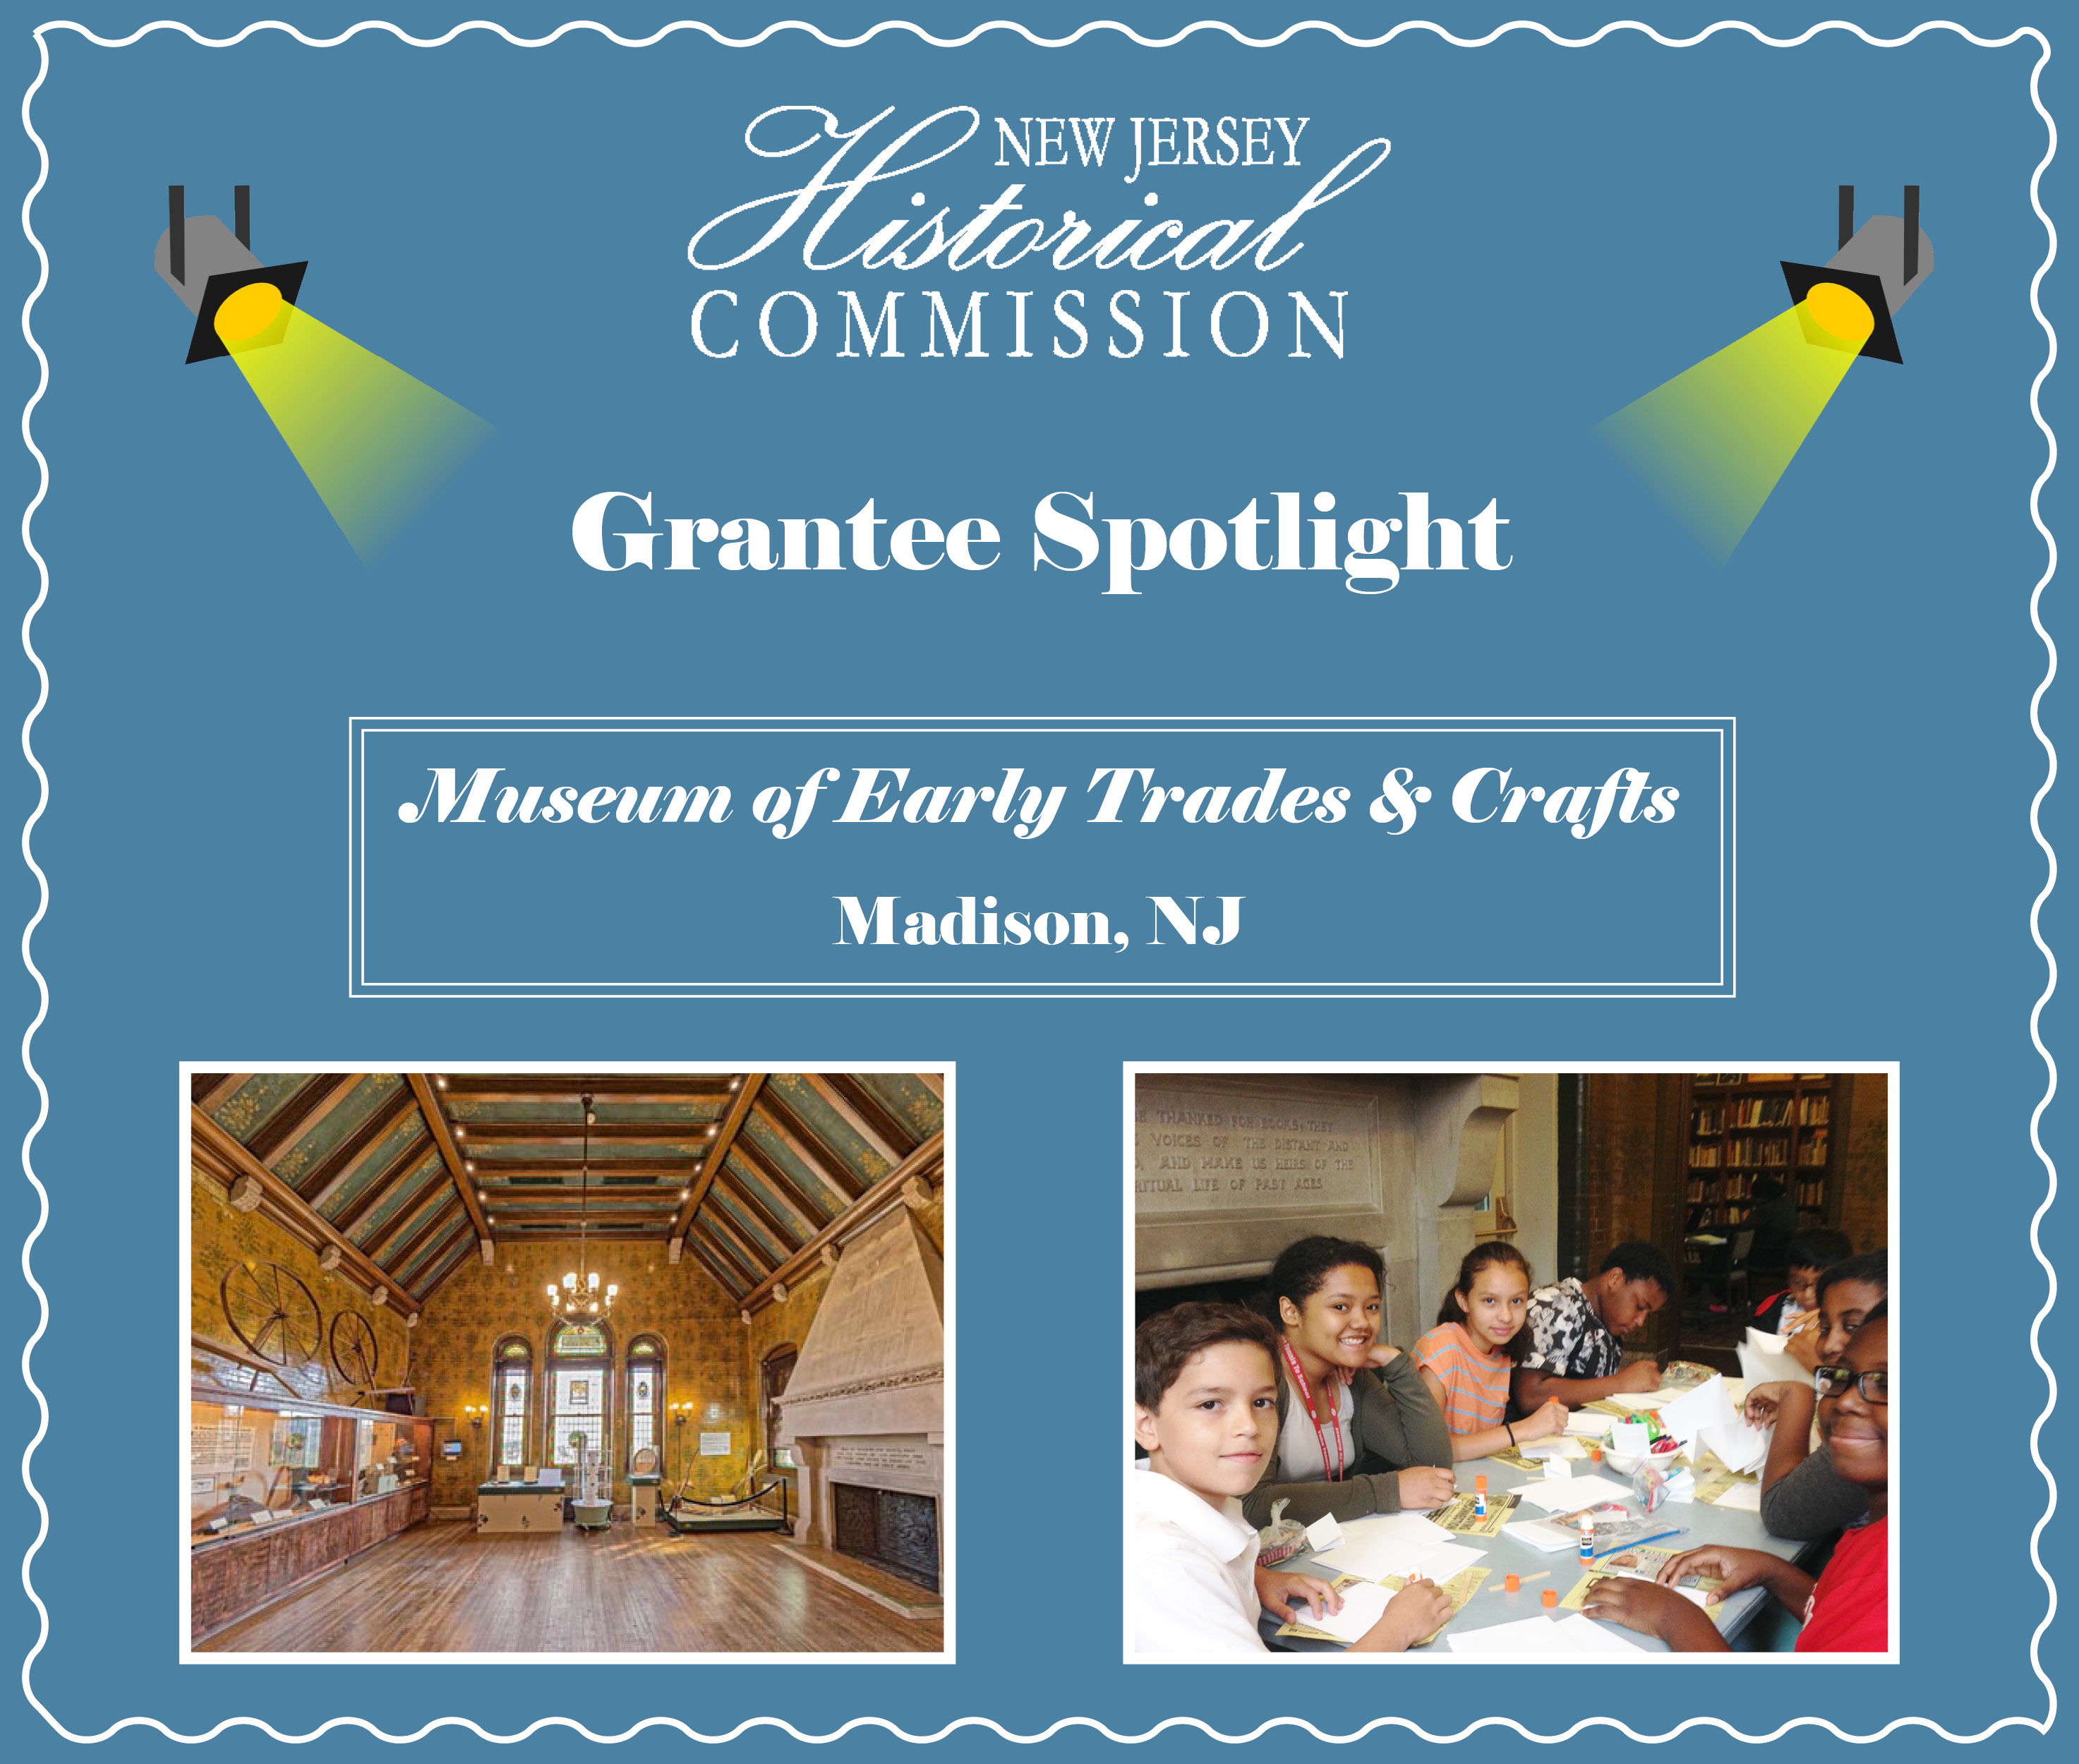 New Jersey Historical Commission (NJHC) Grantee Spotlight: The Museum of Early Trades & Crafts